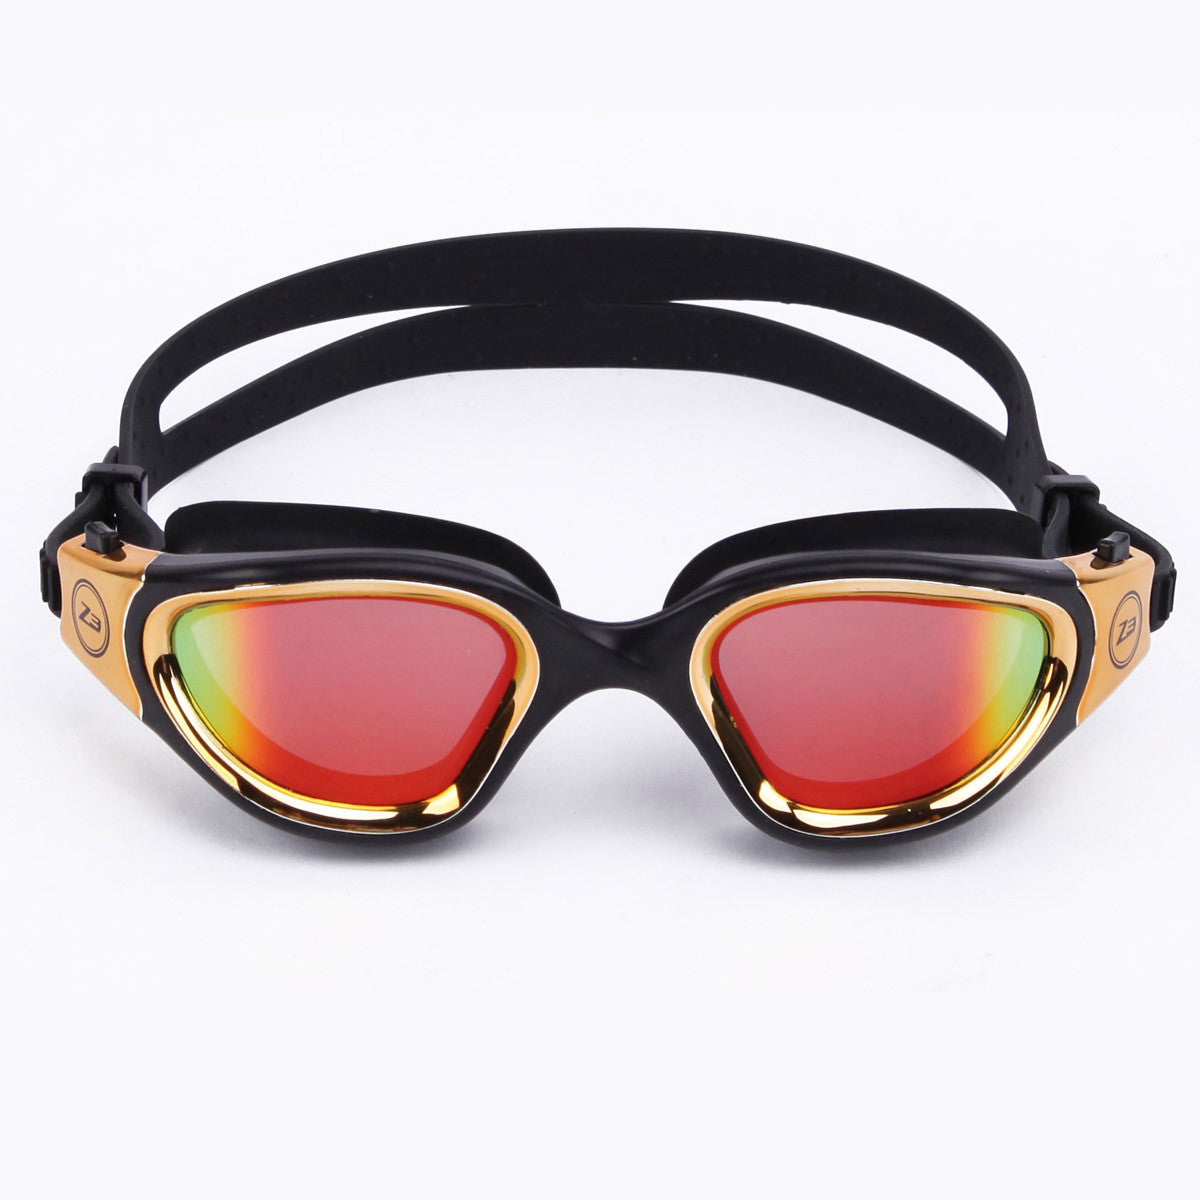 Vapour Polarized Goggles in Metallic Gold